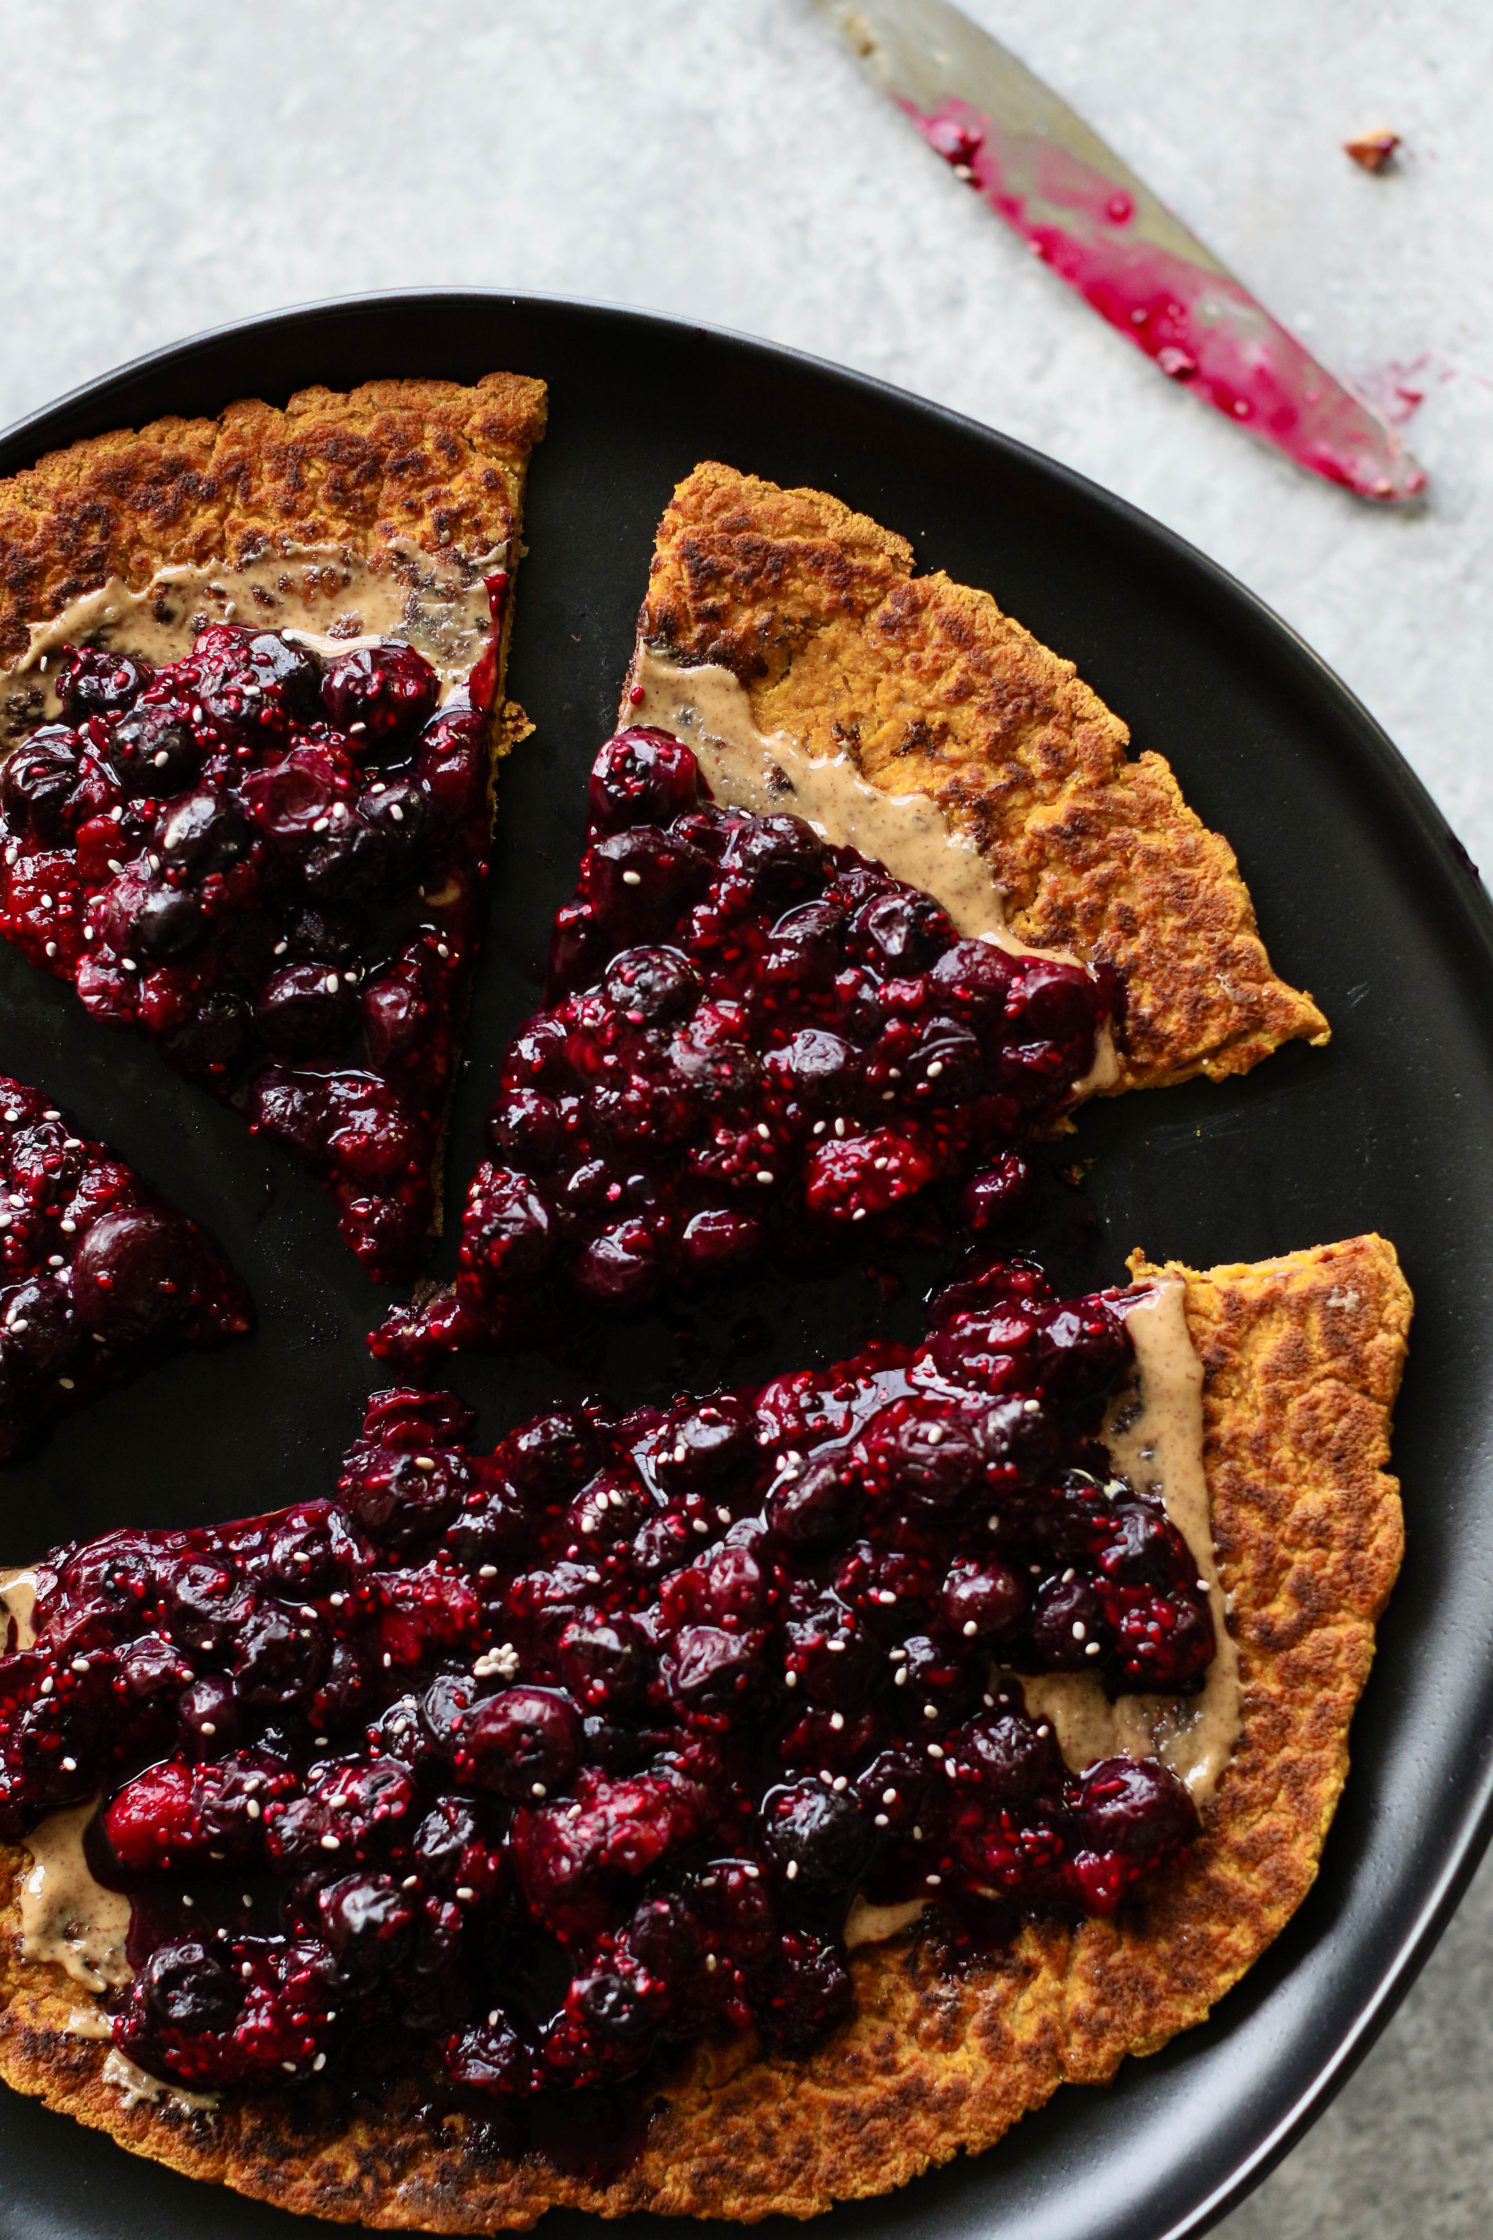 Peanut Butter & Jelly Protein Pancake Pizza by Flora & Vino